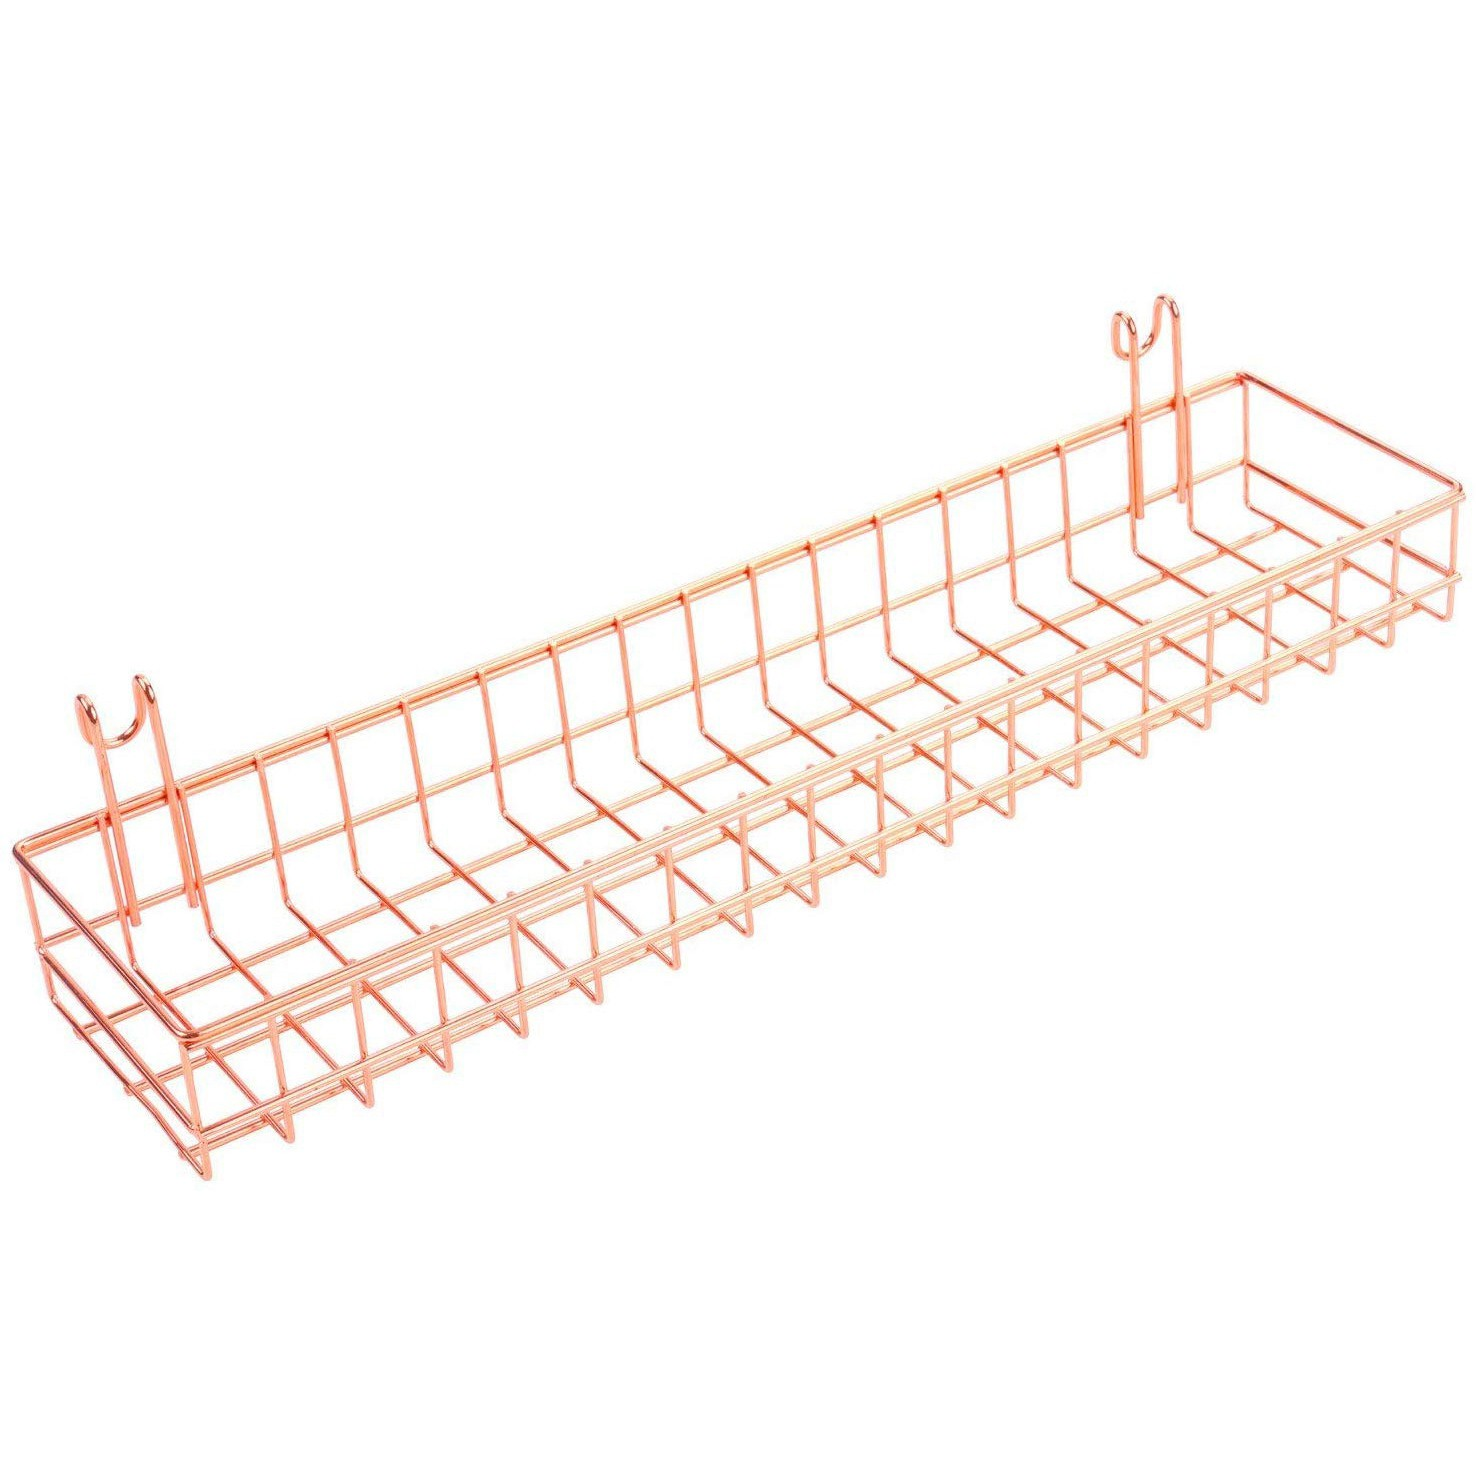 Room Decor Rose Gold Grid Wall Basket Wire Wall Shelf For Wall Storage Display Shopee Philippines